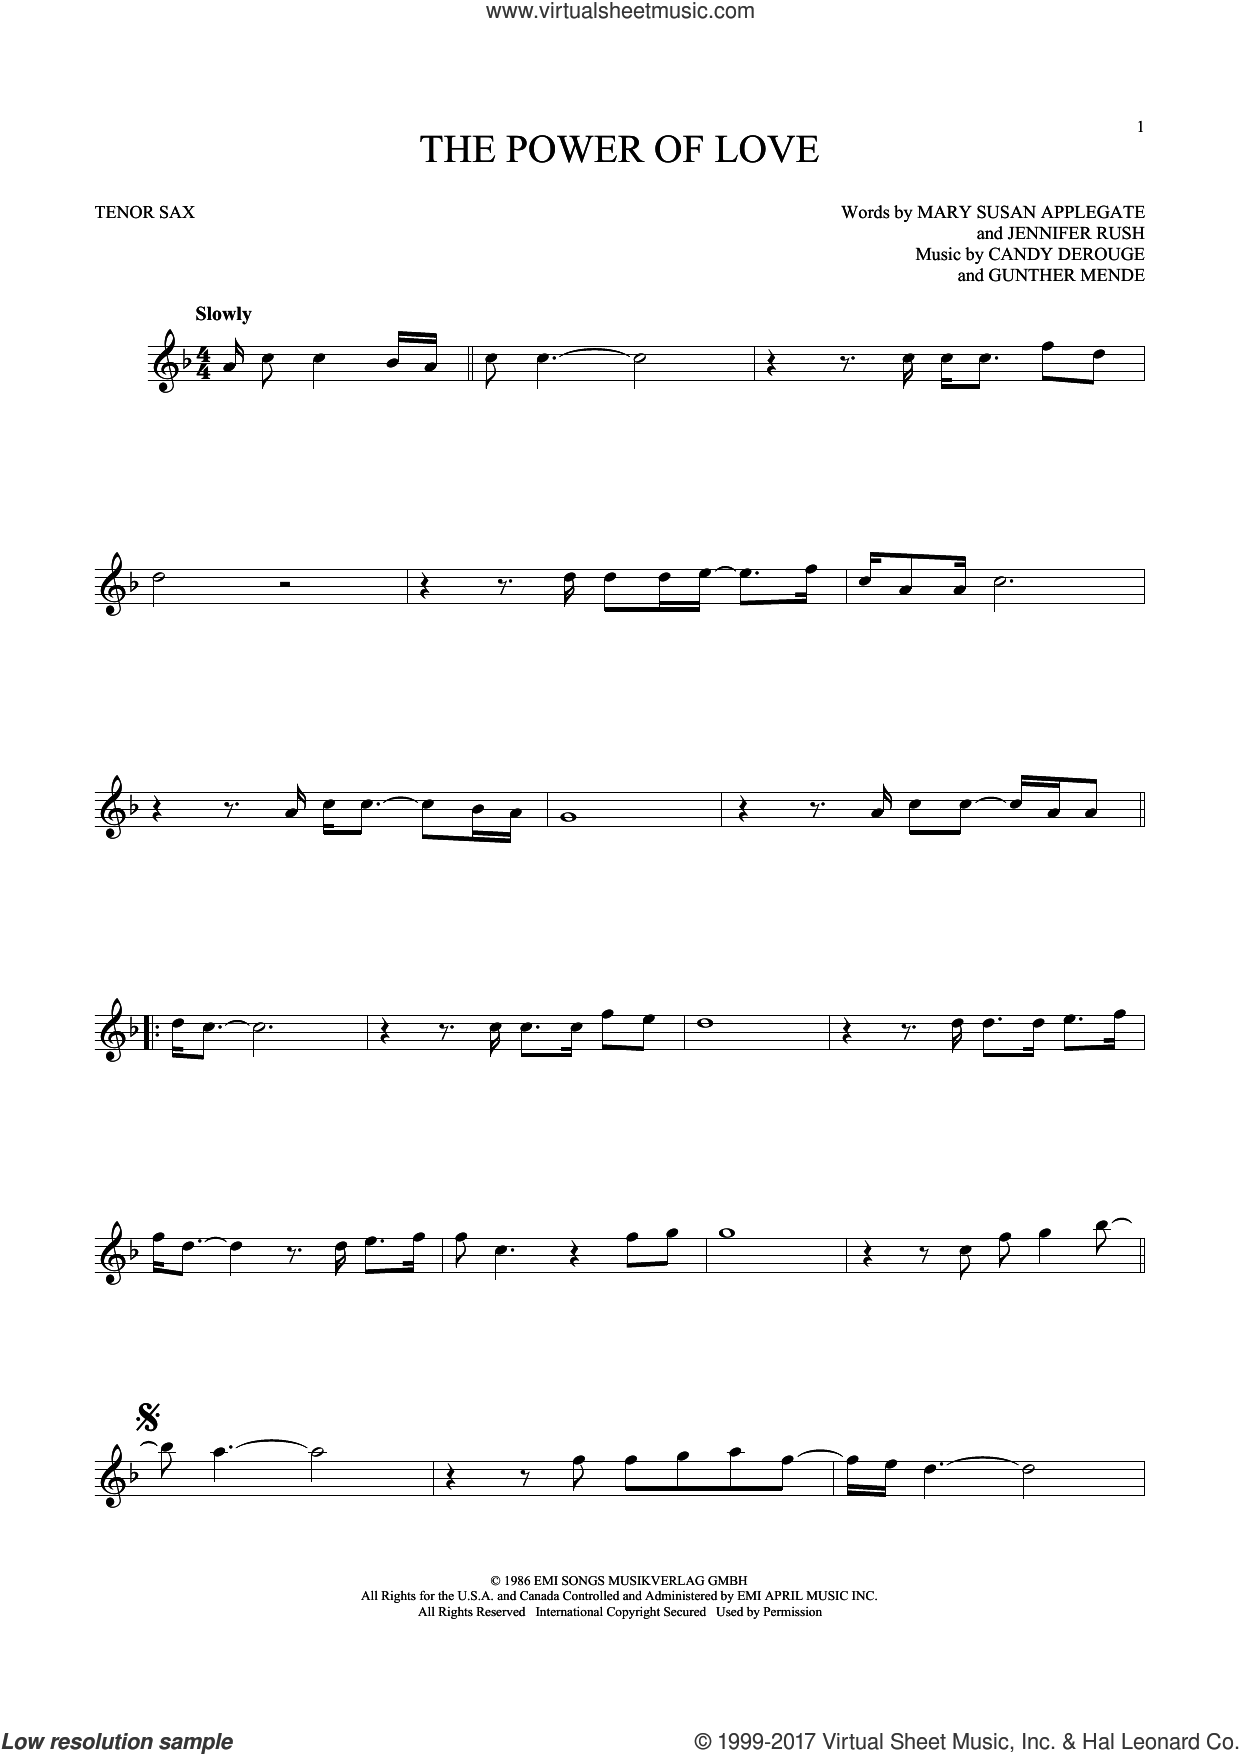 The Power Of Love sheet music for tenor saxophone solo ( Sax) by Mary Susan Applegate, Air Supply, Celine Dion, Candy Derouge and Jennifer Rush. Score Image Preview.